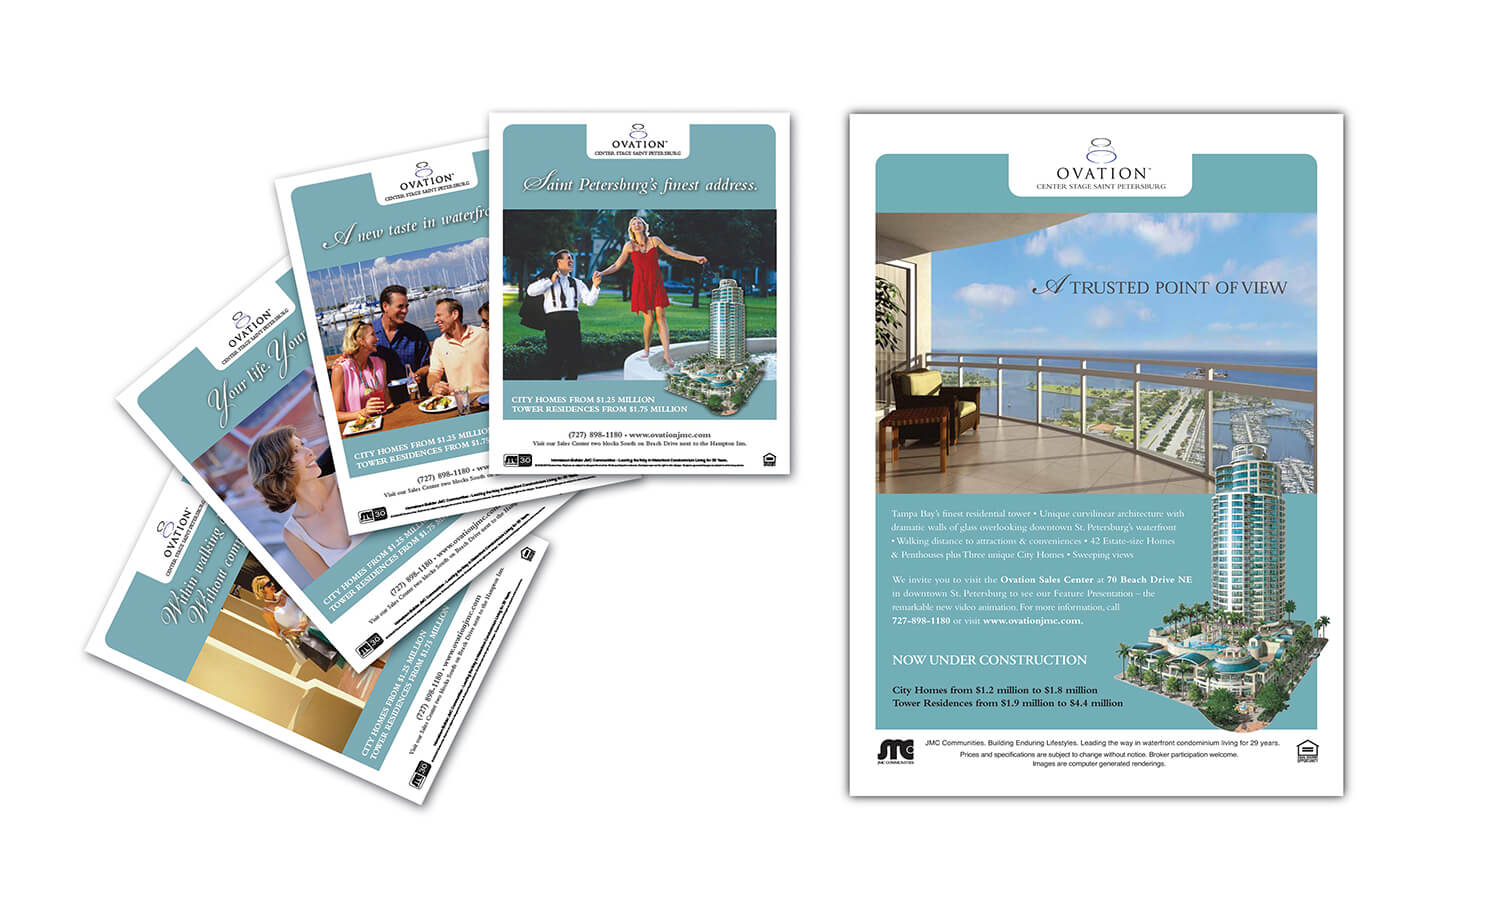 Ovation Tower Campaign collateral 1